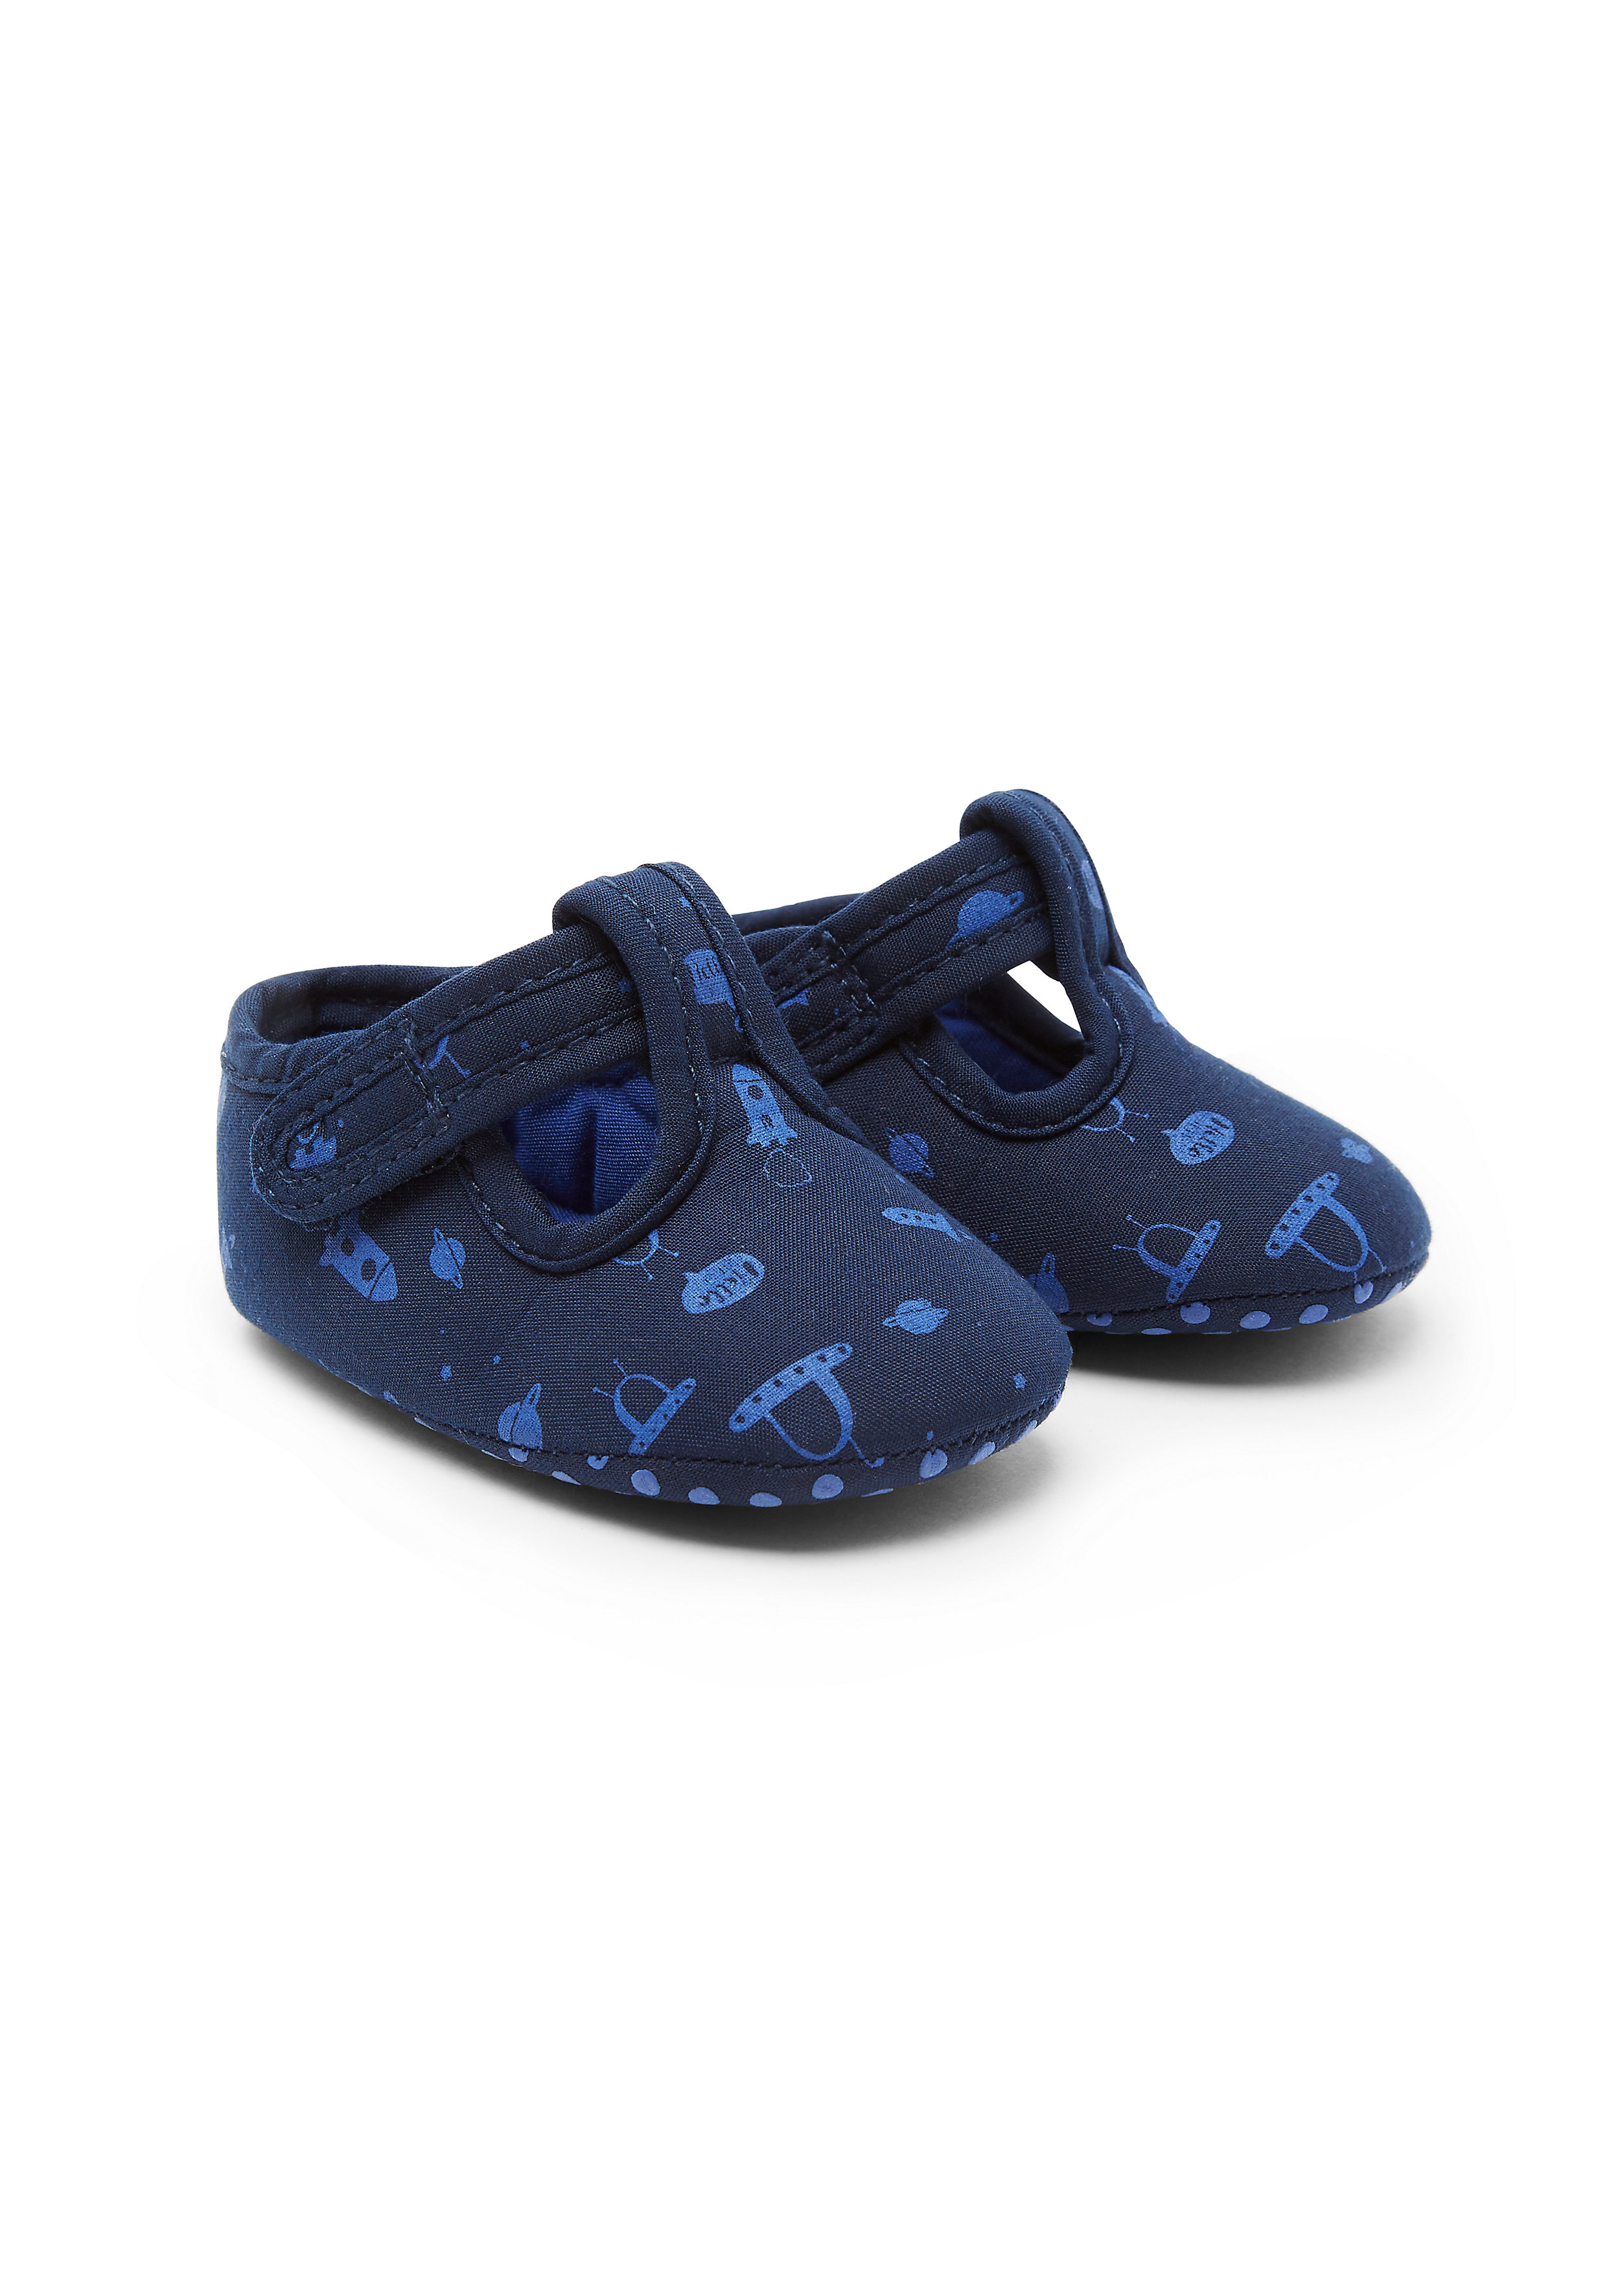 Mothercare   Boys Space T-Bar Booties - Blue